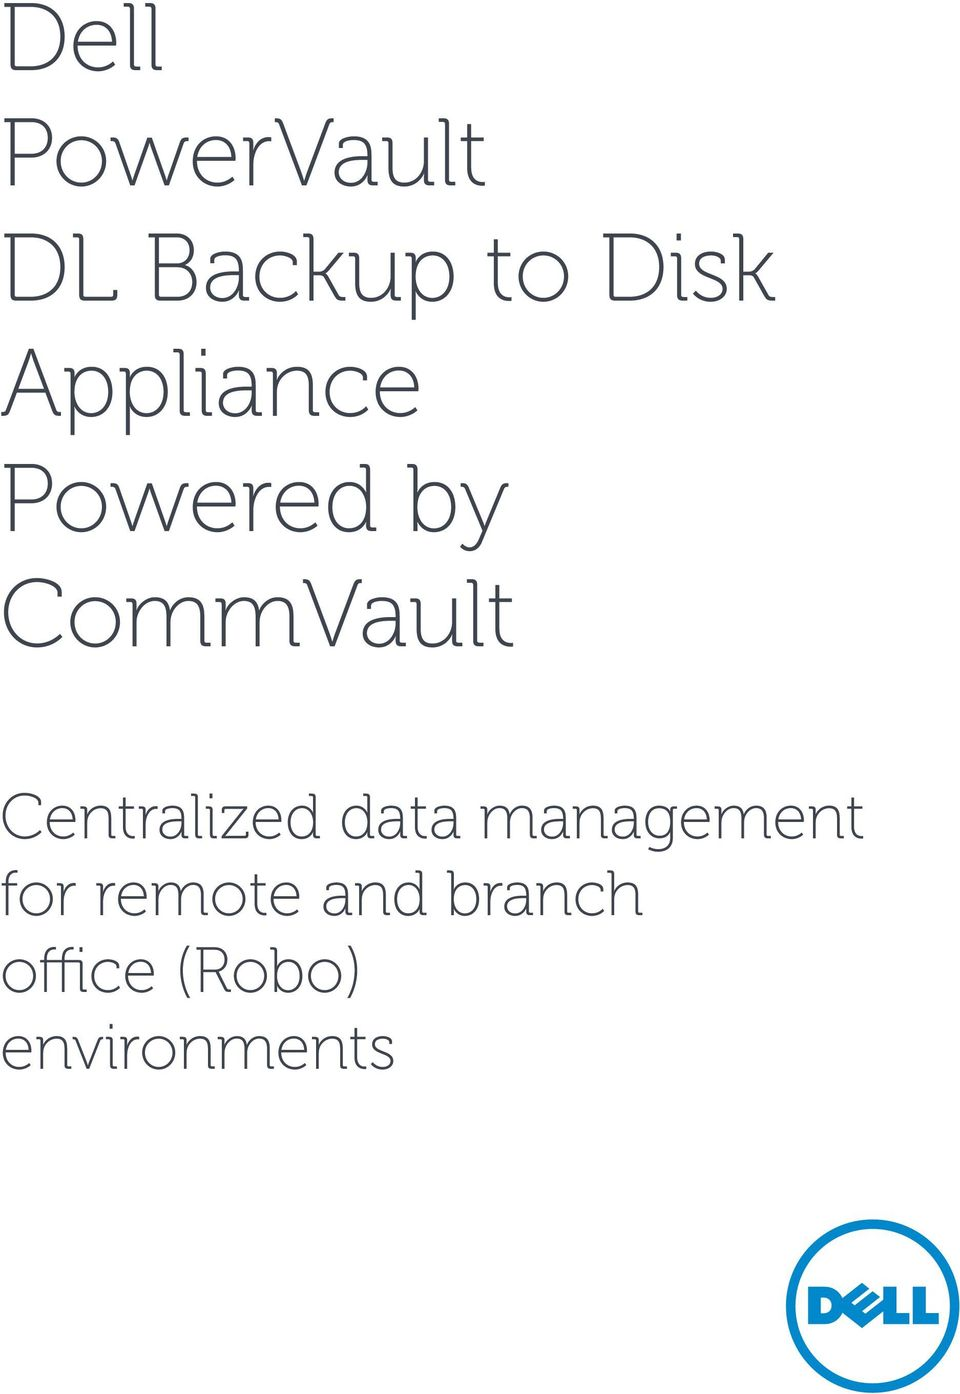 Centralized data management for